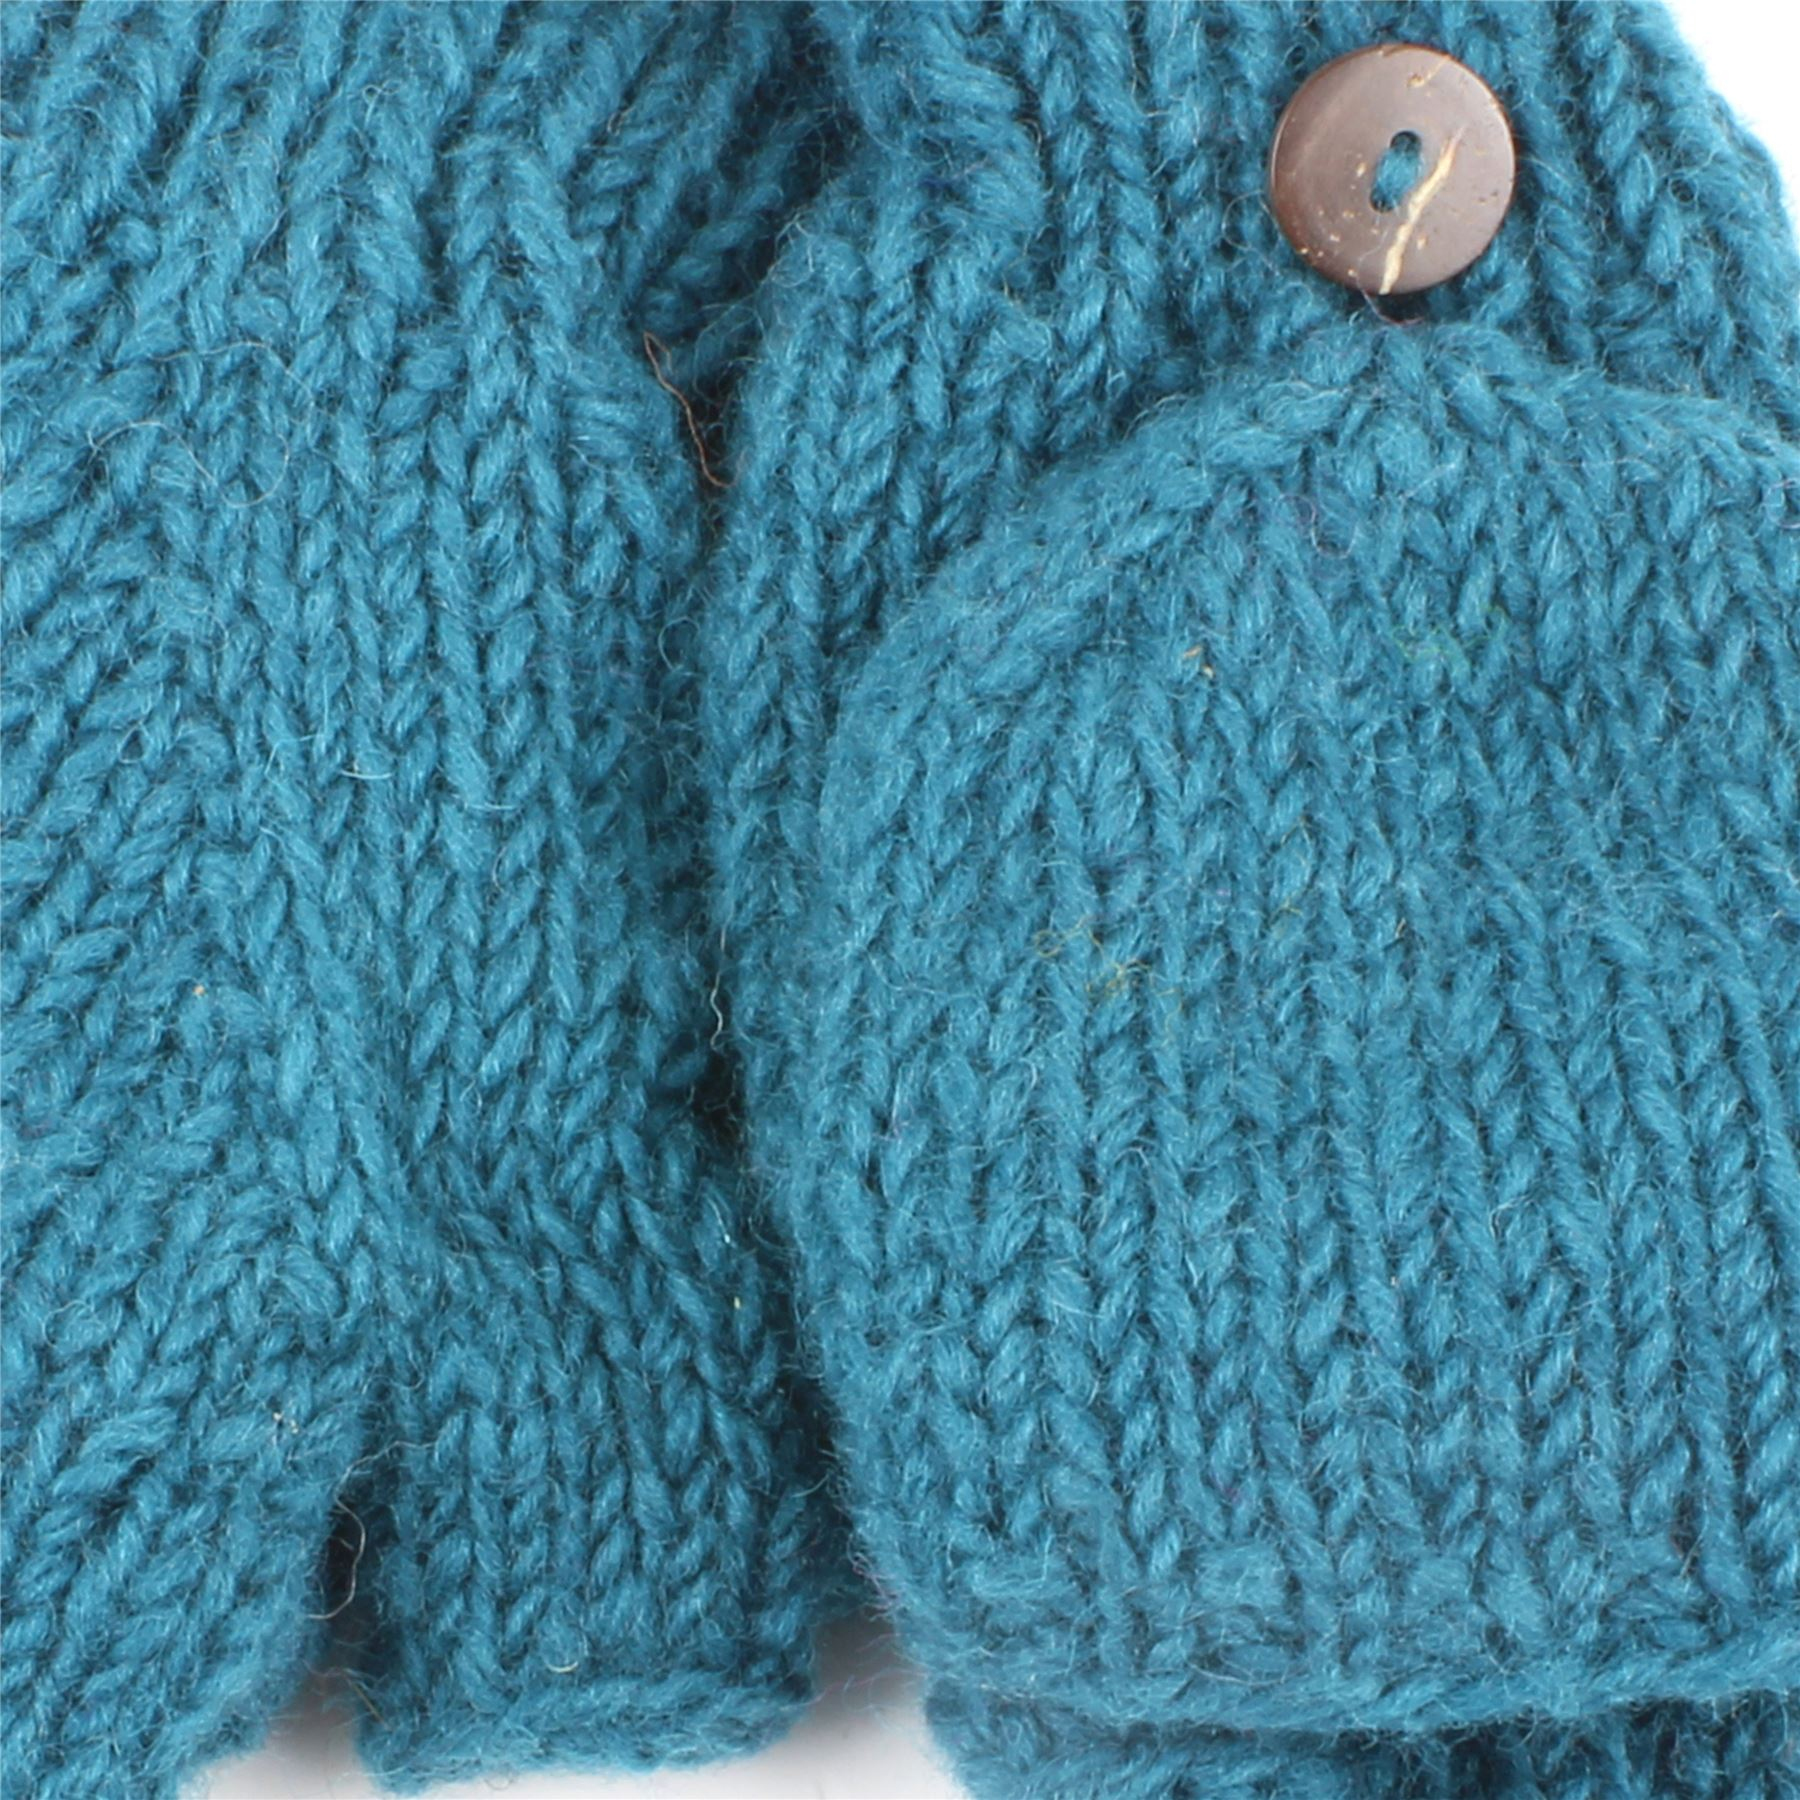 Fingerless Gloves Mittens Fleece Lined Wool Knit Shooting LOUDelephant eBay